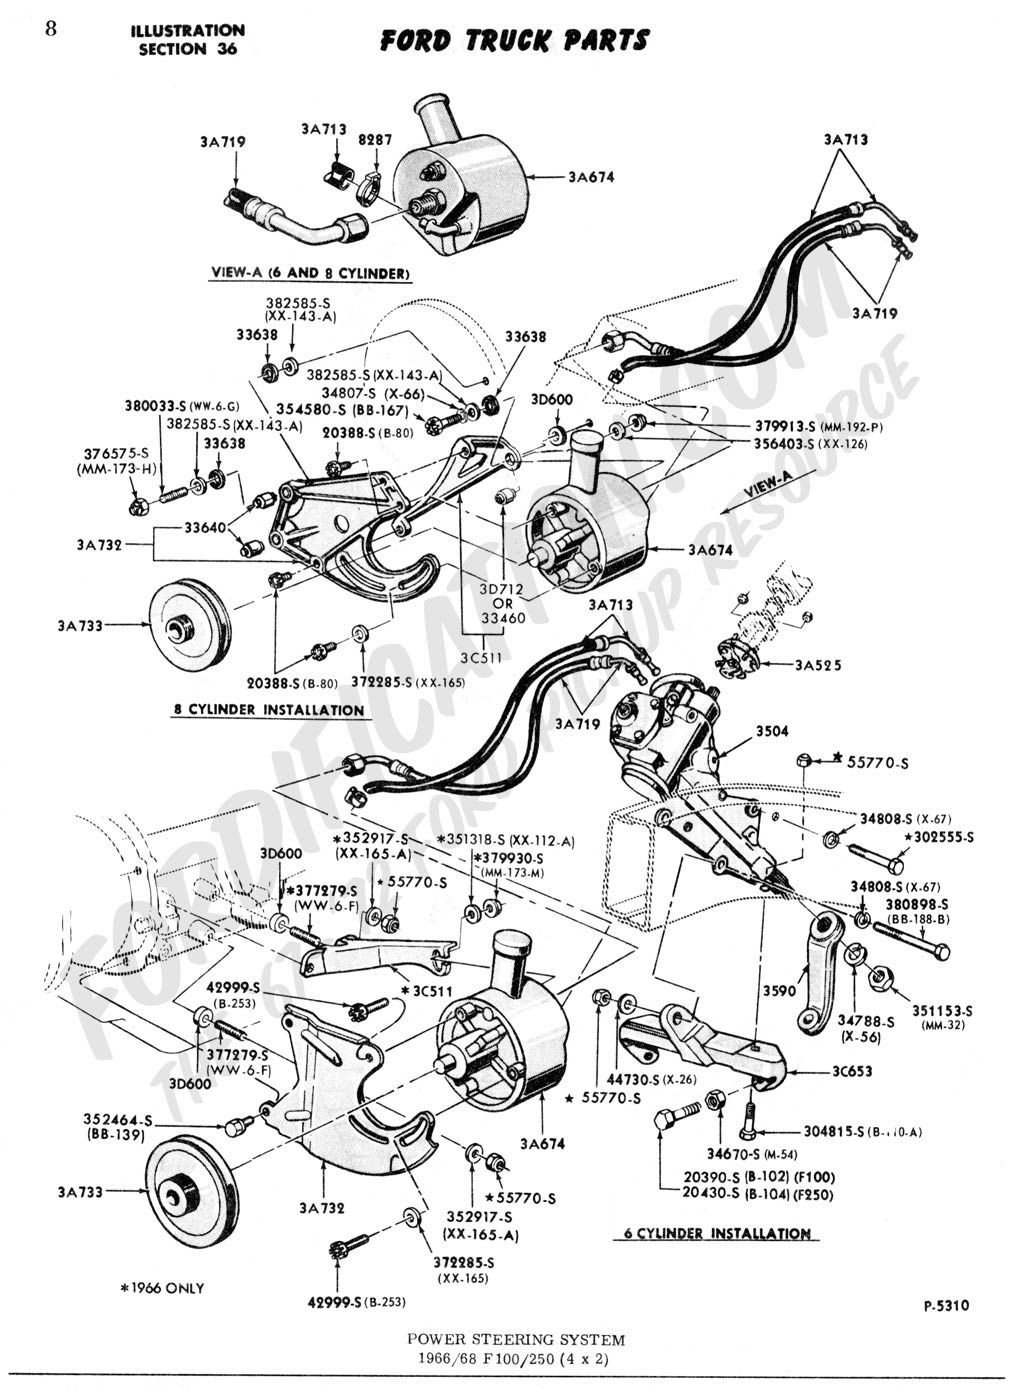 1977 ford truck steering diagram | Power Steering System